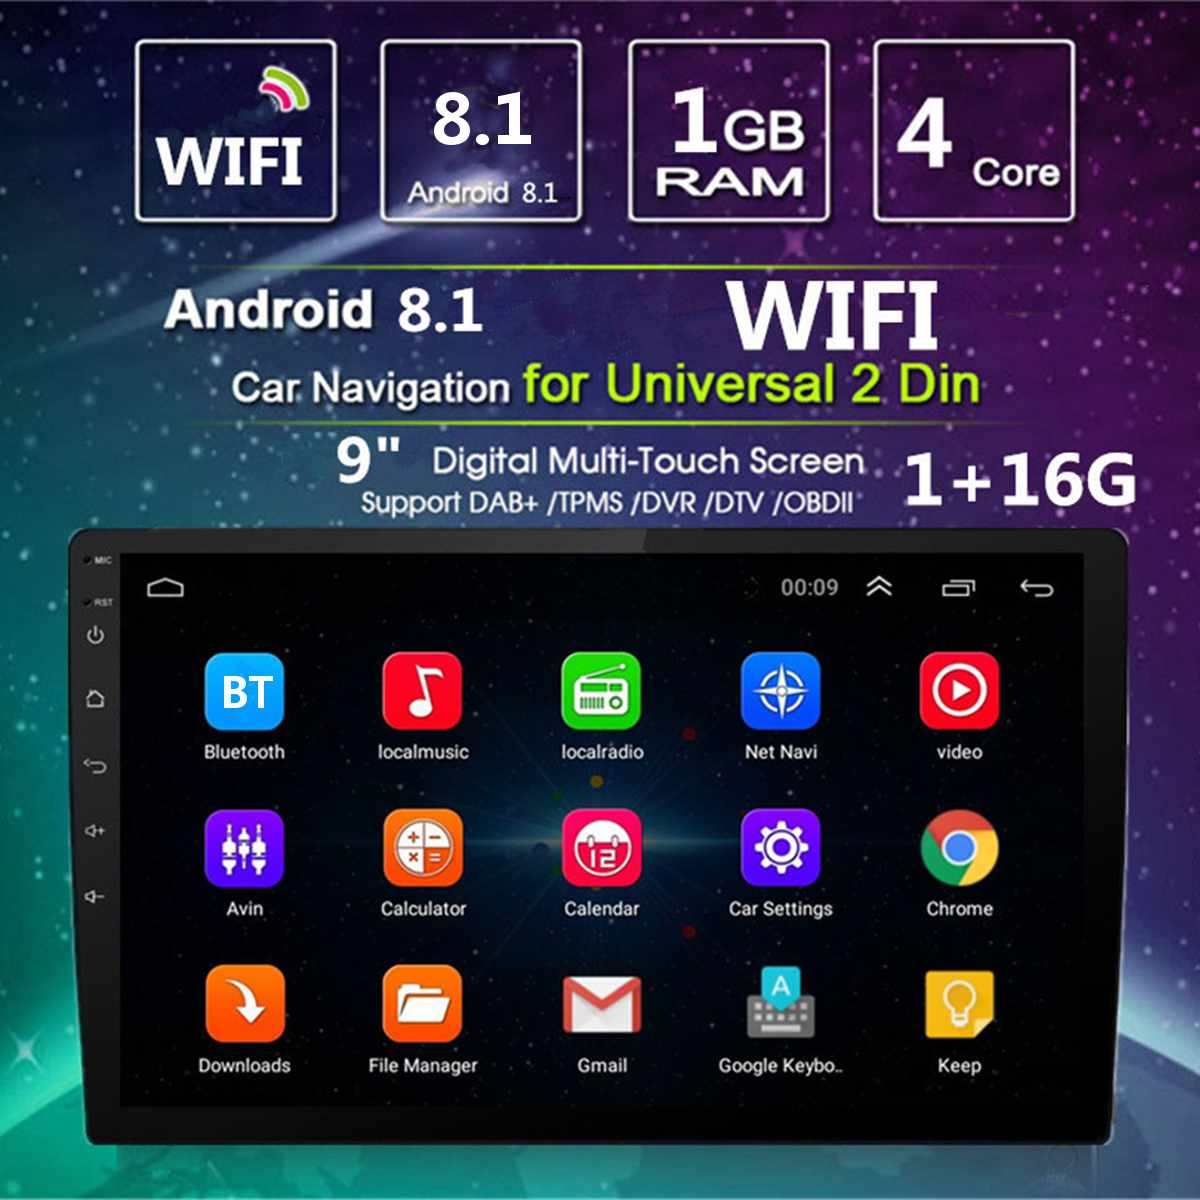 9 auto Lettore MP5 2DIN Stereo Android 8.1 Quad Core Car Stereo Radio Touchable bluetooth WiFi DAB GPS Nav radio Video Player9 auto Lettore MP5 2DIN Stereo Android 8.1 Quad Core Car Stereo Radio Touchable bluetooth WiFi DAB GPS Nav radio Video Player